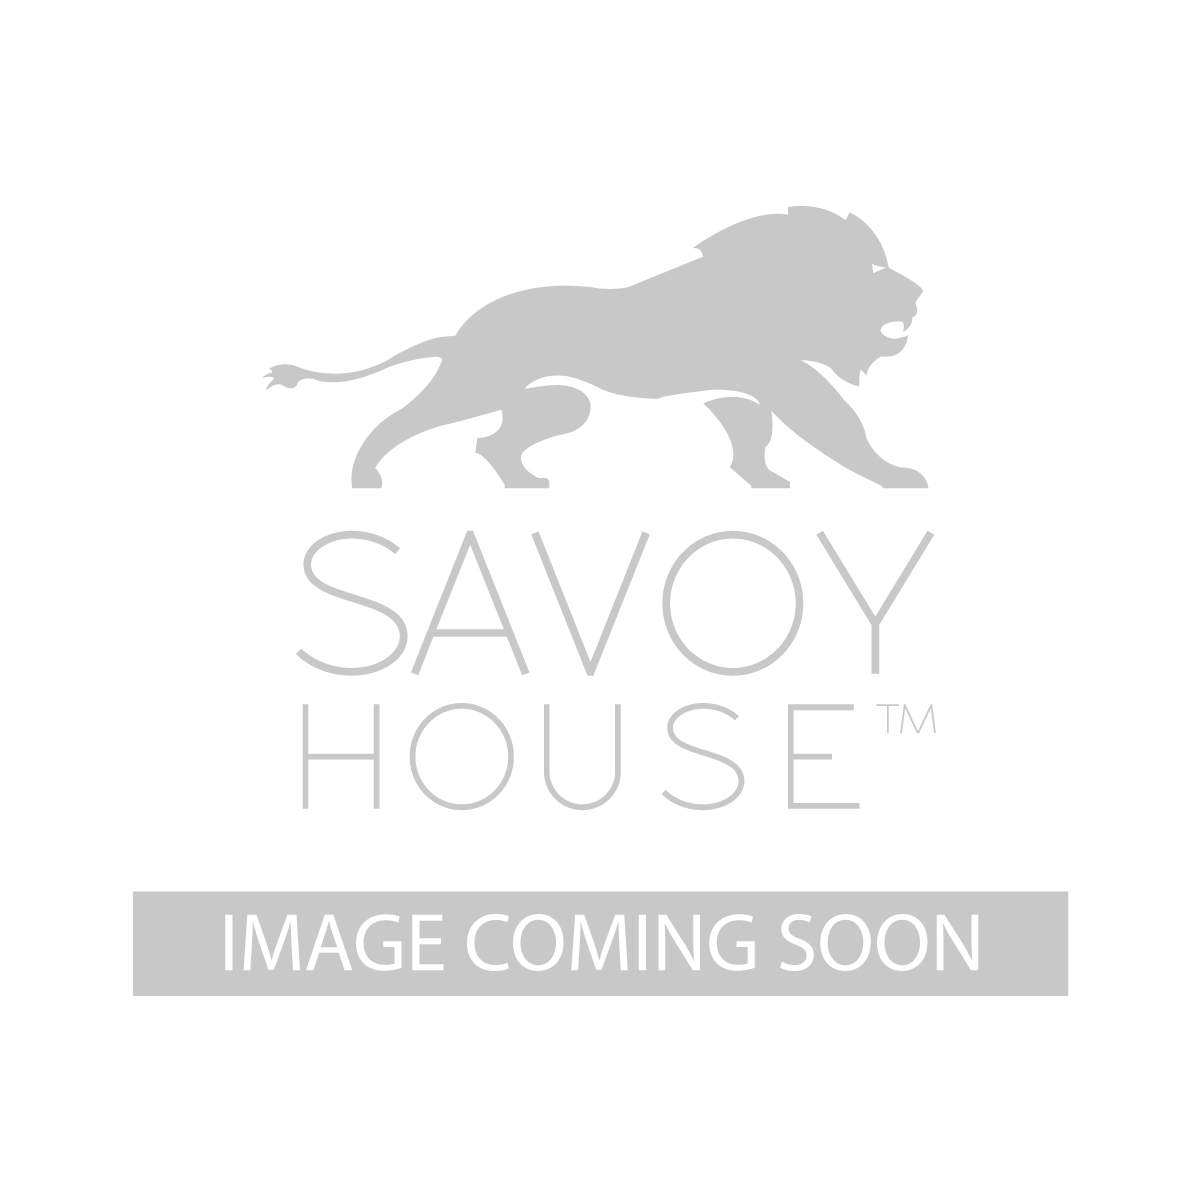 52 083 5ro 13 portico outdoor ceiling fan by savoy house portico outdoor ceiling fan aloadofball Images